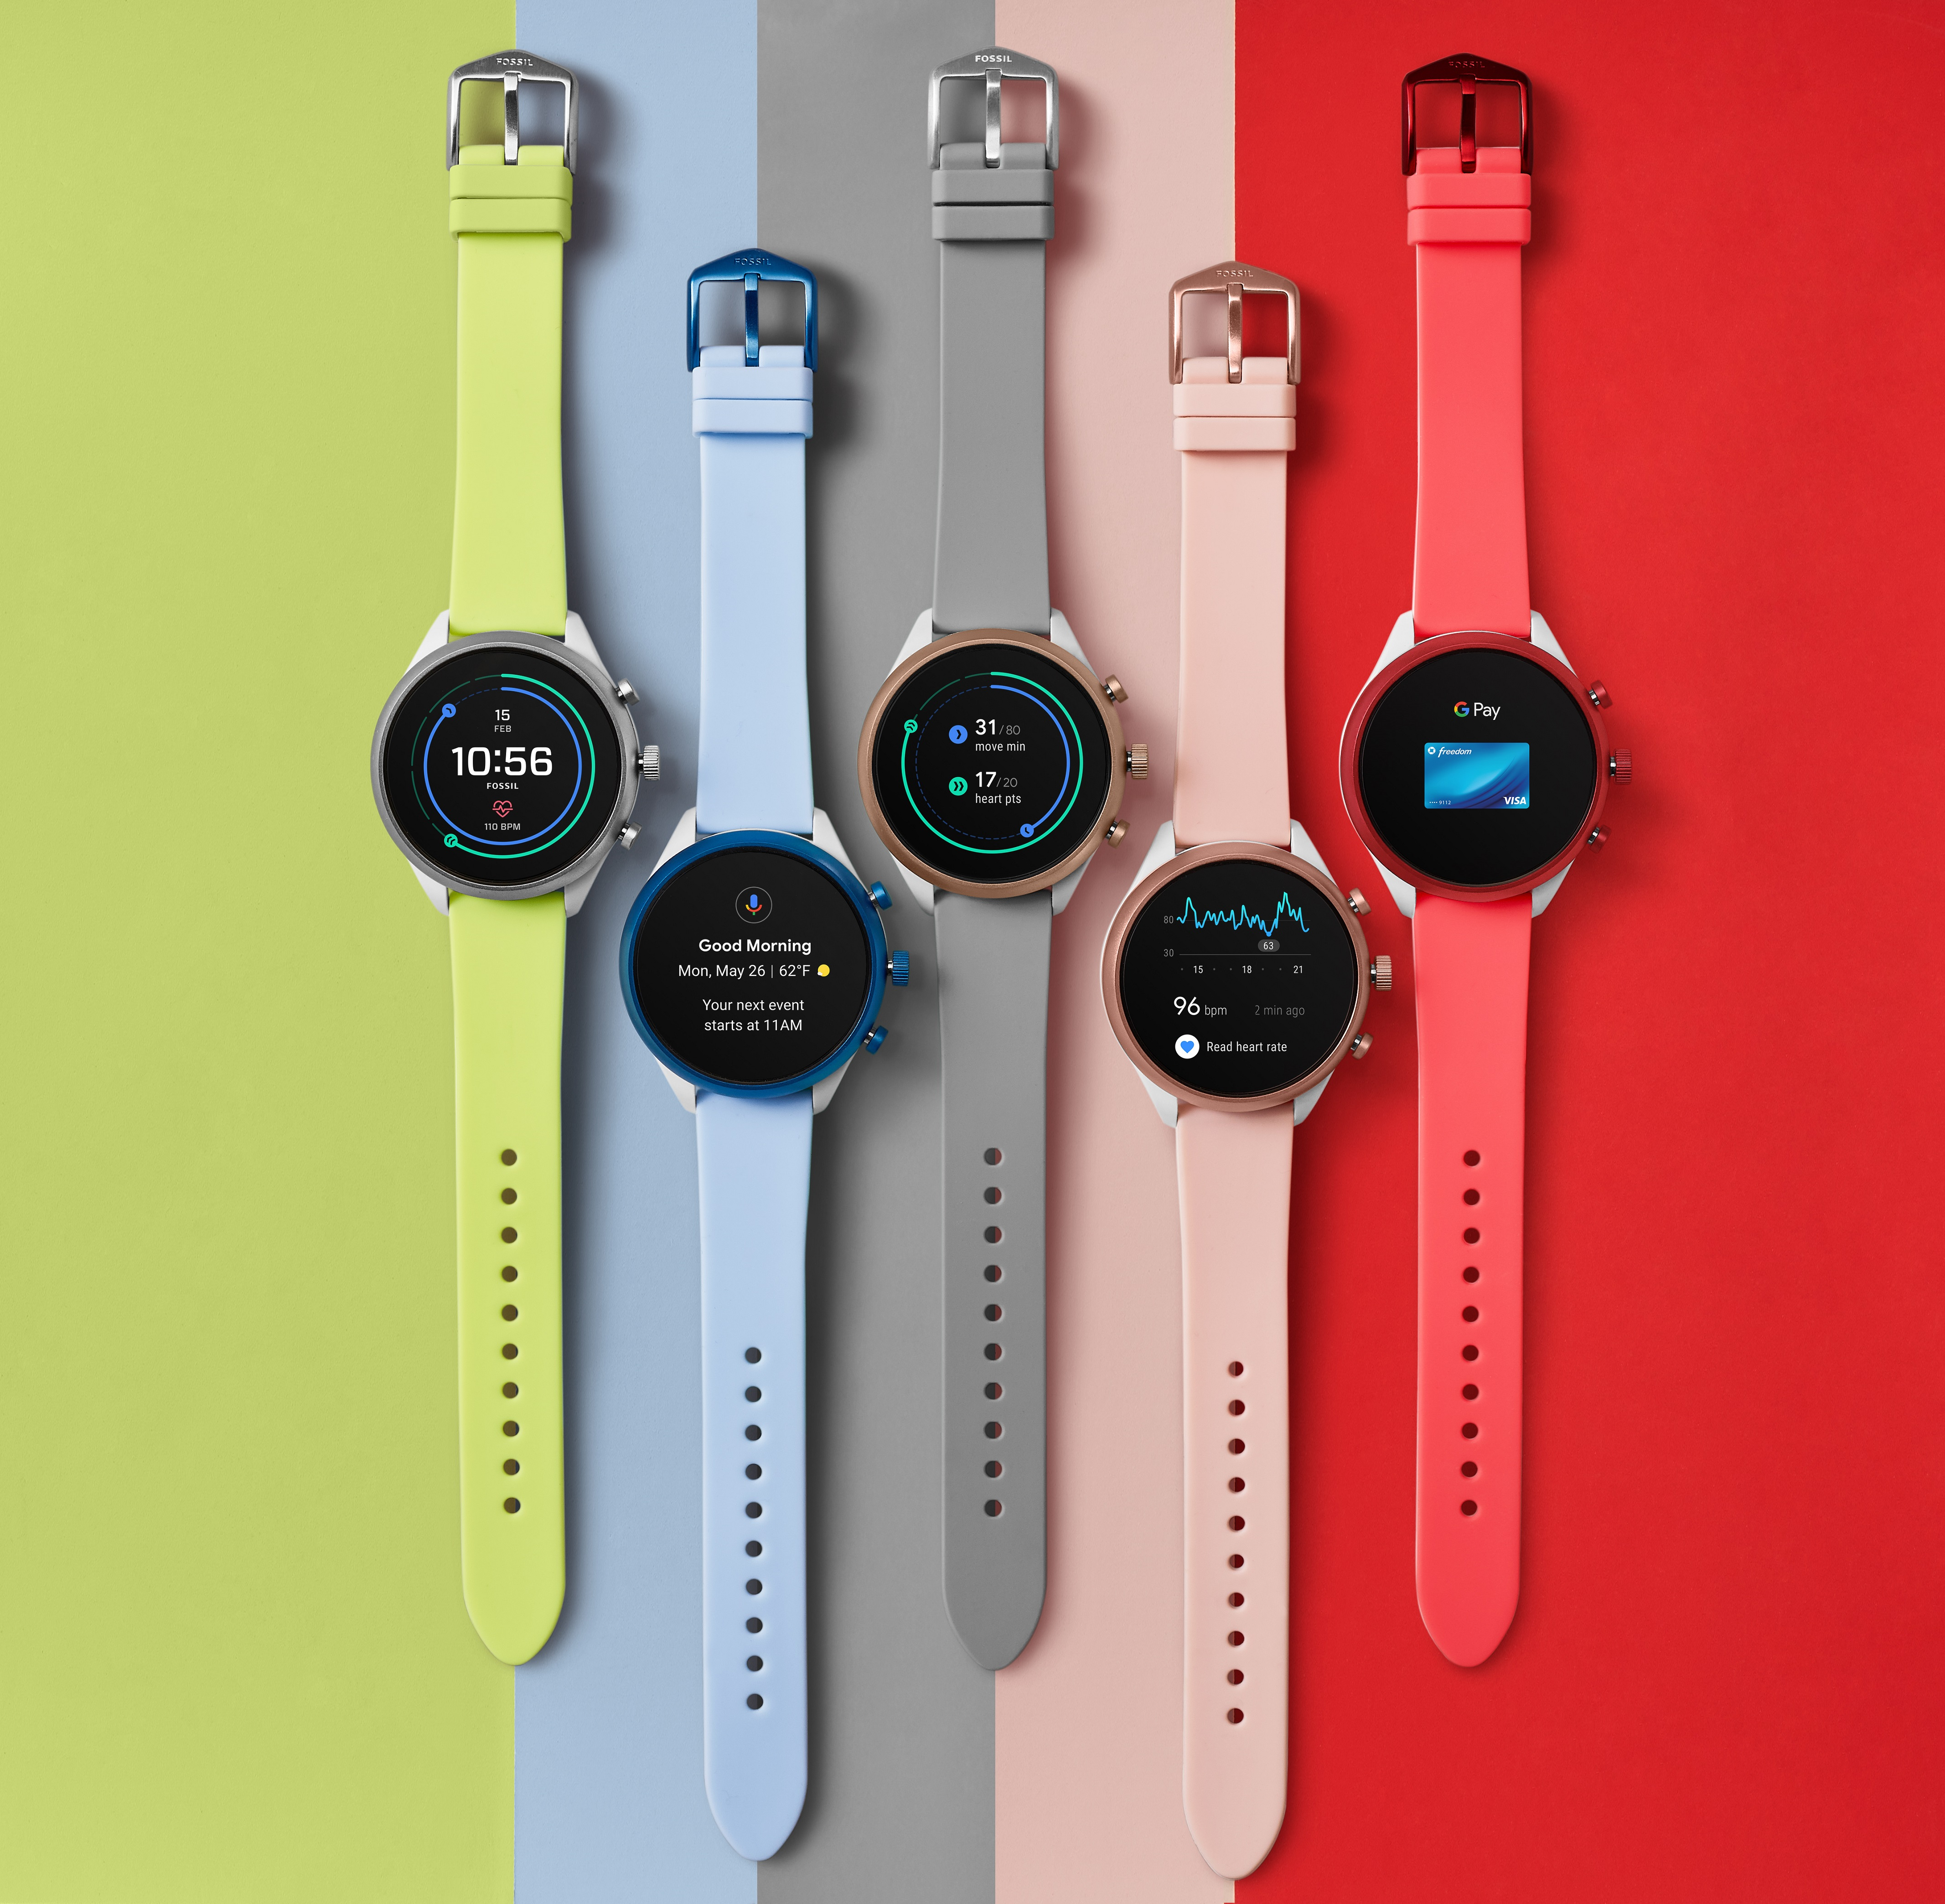 Fossil launches £249 smartwatch on Qualcomm Snapdragon Wear 3100 platform